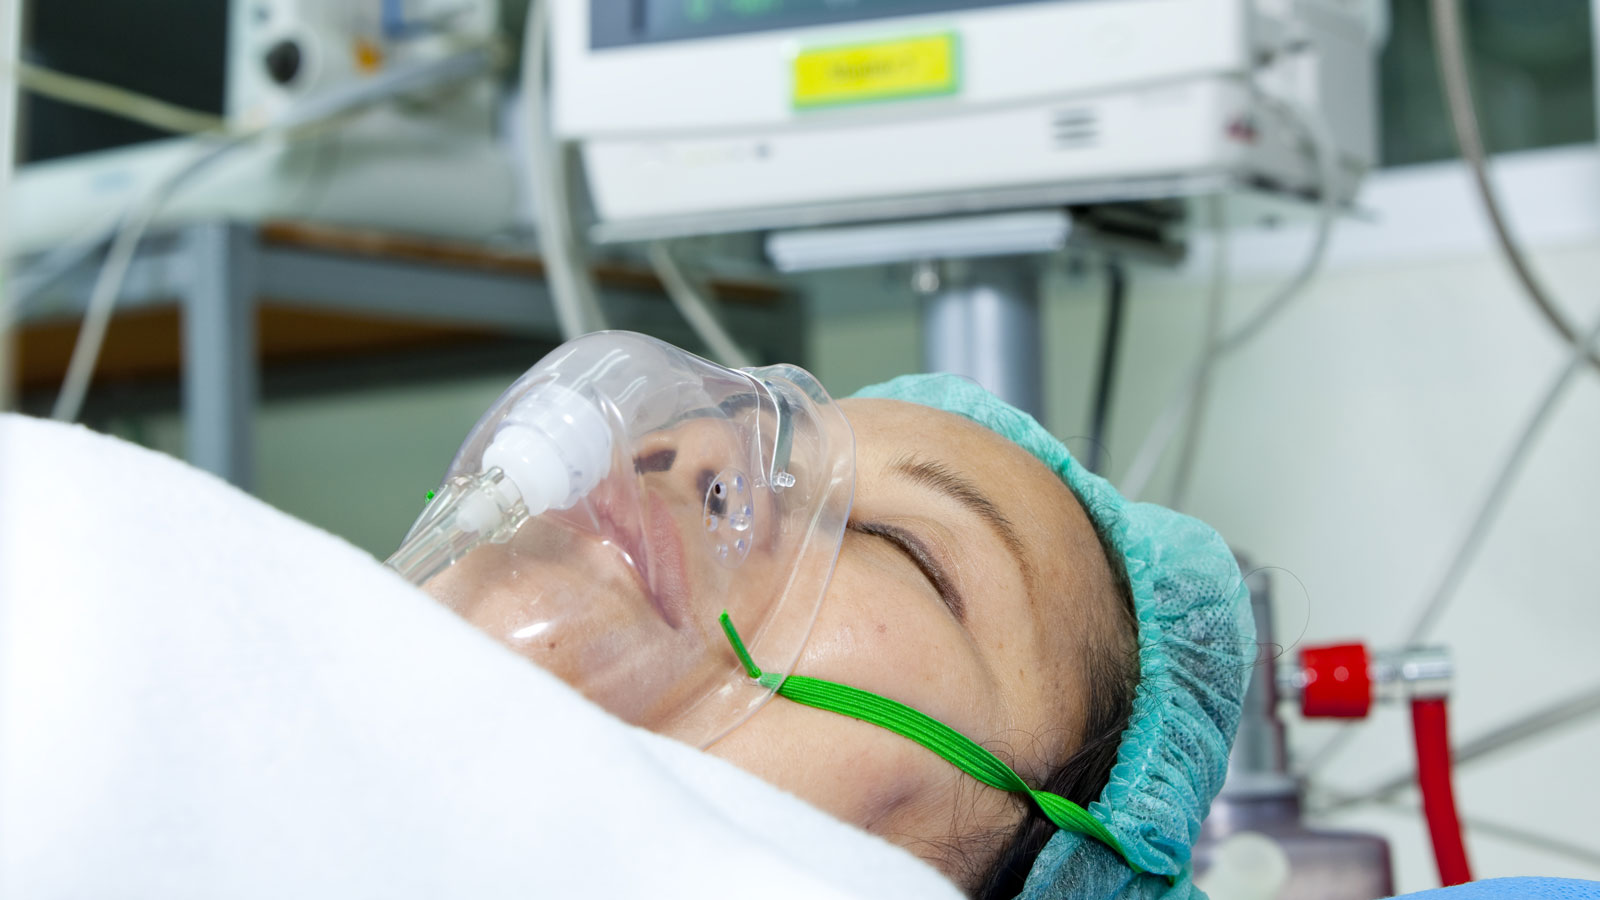 "<h4>Double the ventilator supply</h4><p>It's time to use federal emergency powers to ramp up ventilator supply so that we can double the available number in the next four weeks. <a href=""https://uspirg.webaction.org/p/dia/action4/common/public/?action_KEY=37331"" style=""text-decoration:underline!important;"">Take action.</a></p>"